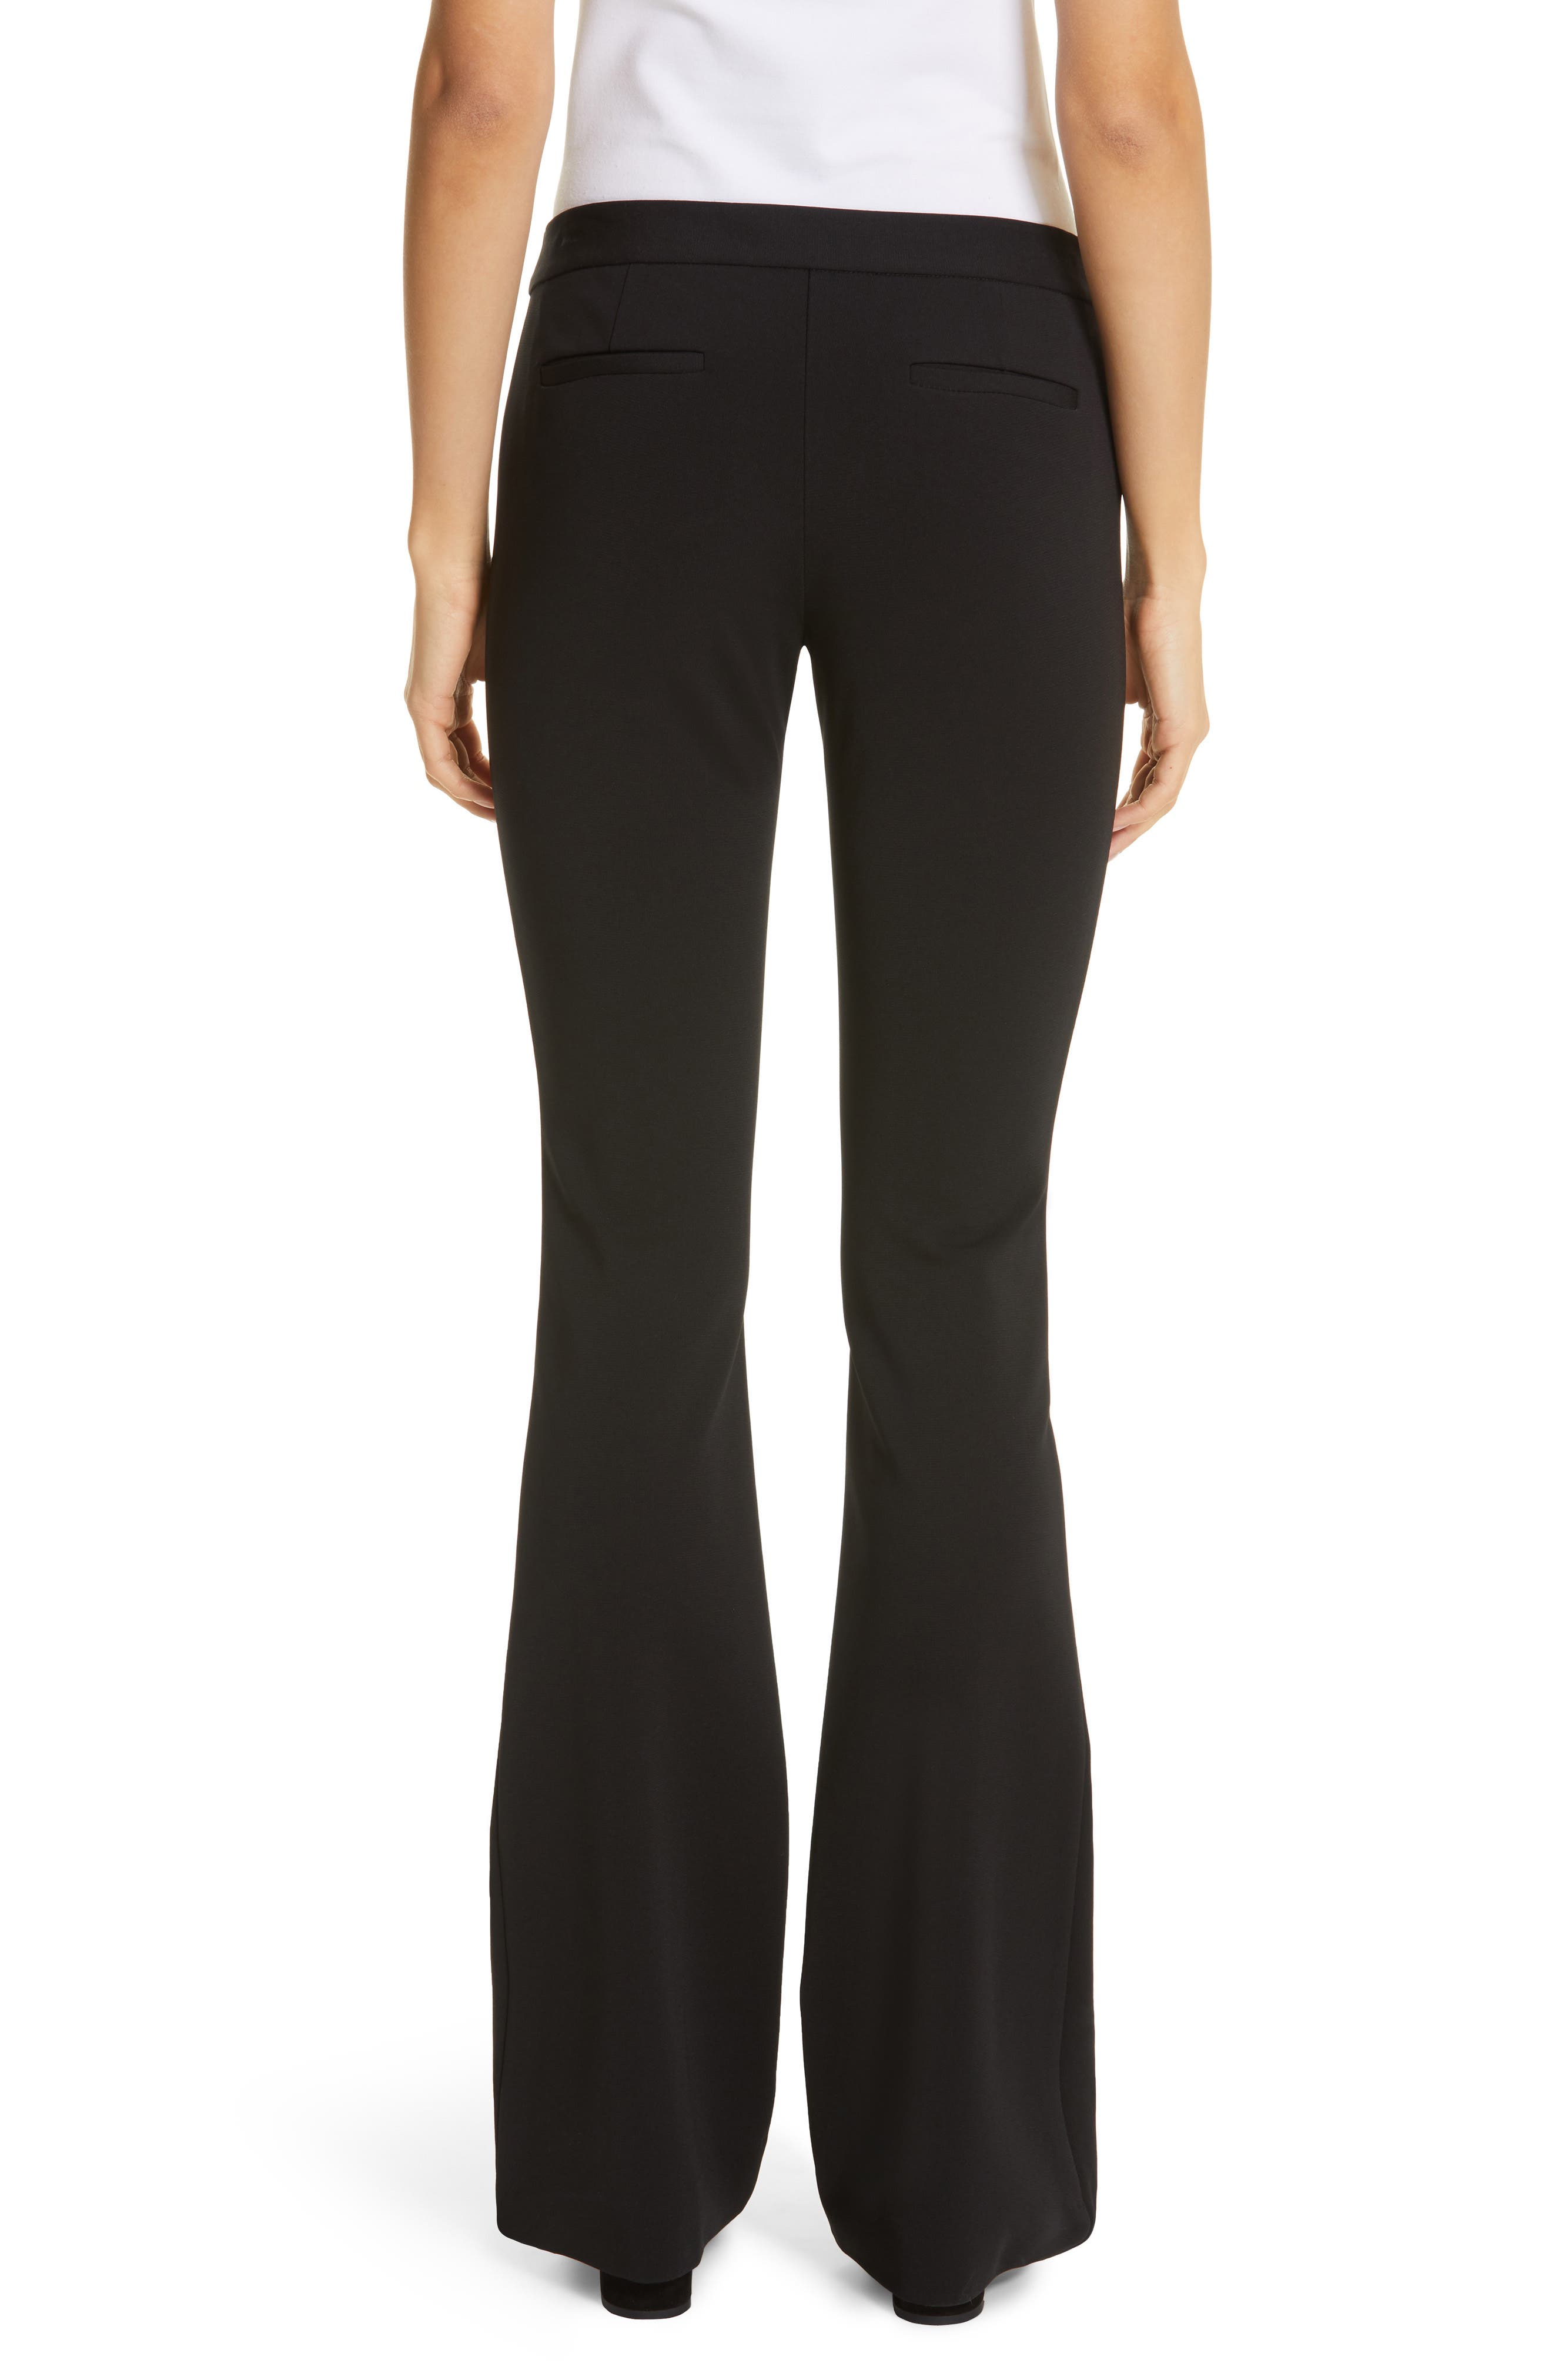 LAFAYETTE 148 NEW YORK,                             Waldorf Flare Pants,                             Alternate thumbnail 2, color,                             BLACK